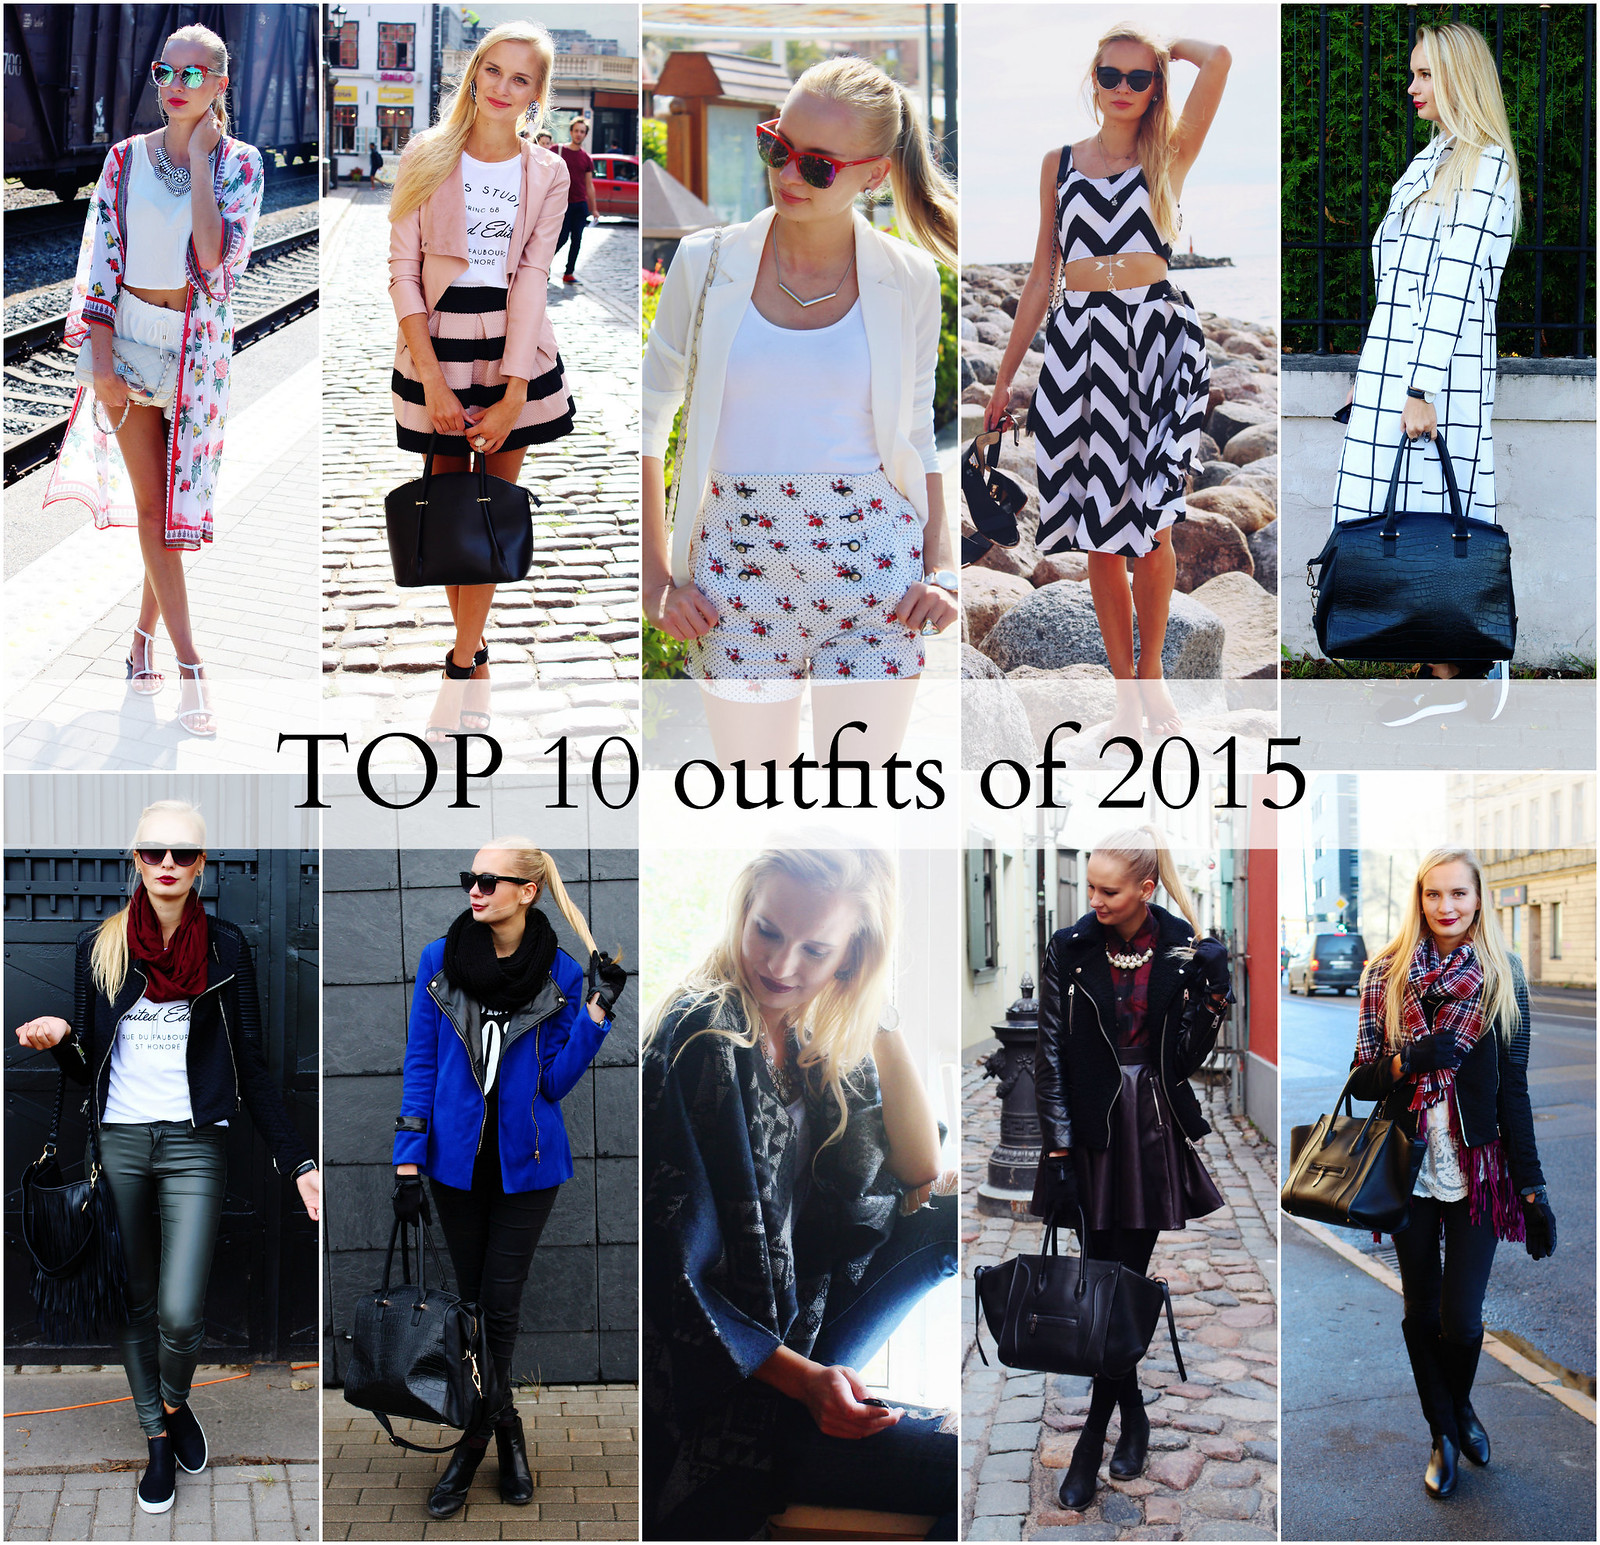 Top 10 fashion bloggers - Fashion Blogger Top 10 Outfits